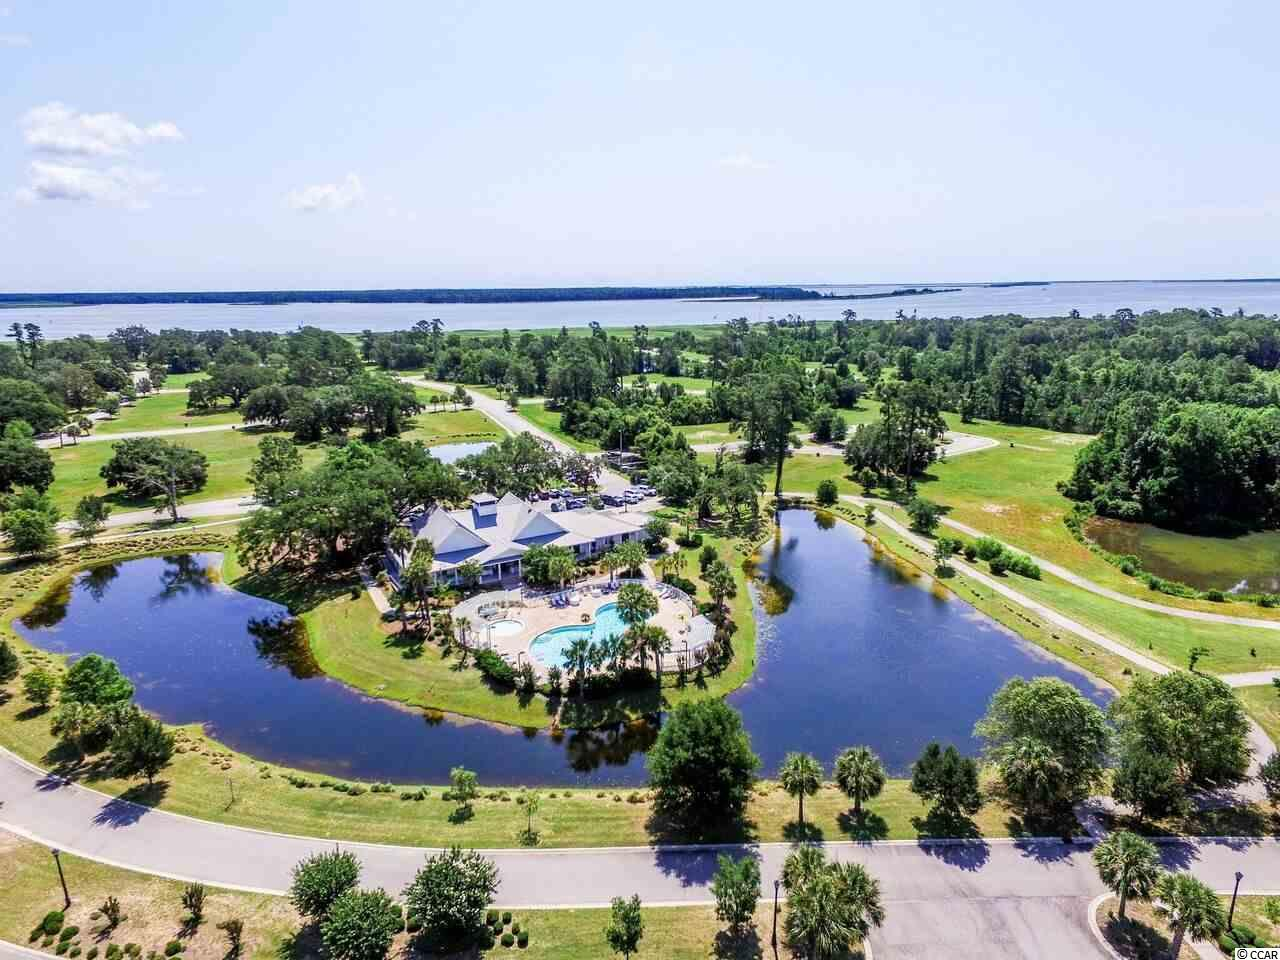 WOW !!! HUGE PRICE REDUCTION!!!!  Possible Owner Financing!!!  South Island Plantation...A gated community located along Winyah Bay and the Intracoastal Waterway, near Historic Georgetown, SC.  Community amenities include a pool, kiddie pool and hot tub. There is also a 5000 sq ft club house with an equipped fitness center, a bar and a full kitchen.  Walking trails wind throughout the community with gazebos for periodic resting. A fishing/crabbin' gazebo is  now complete.  A secured RV/ Boat storage area is available for property owners.  Huge oaks and beautiful ponds make this one of the premier communities in the area.  Build your dream home today....